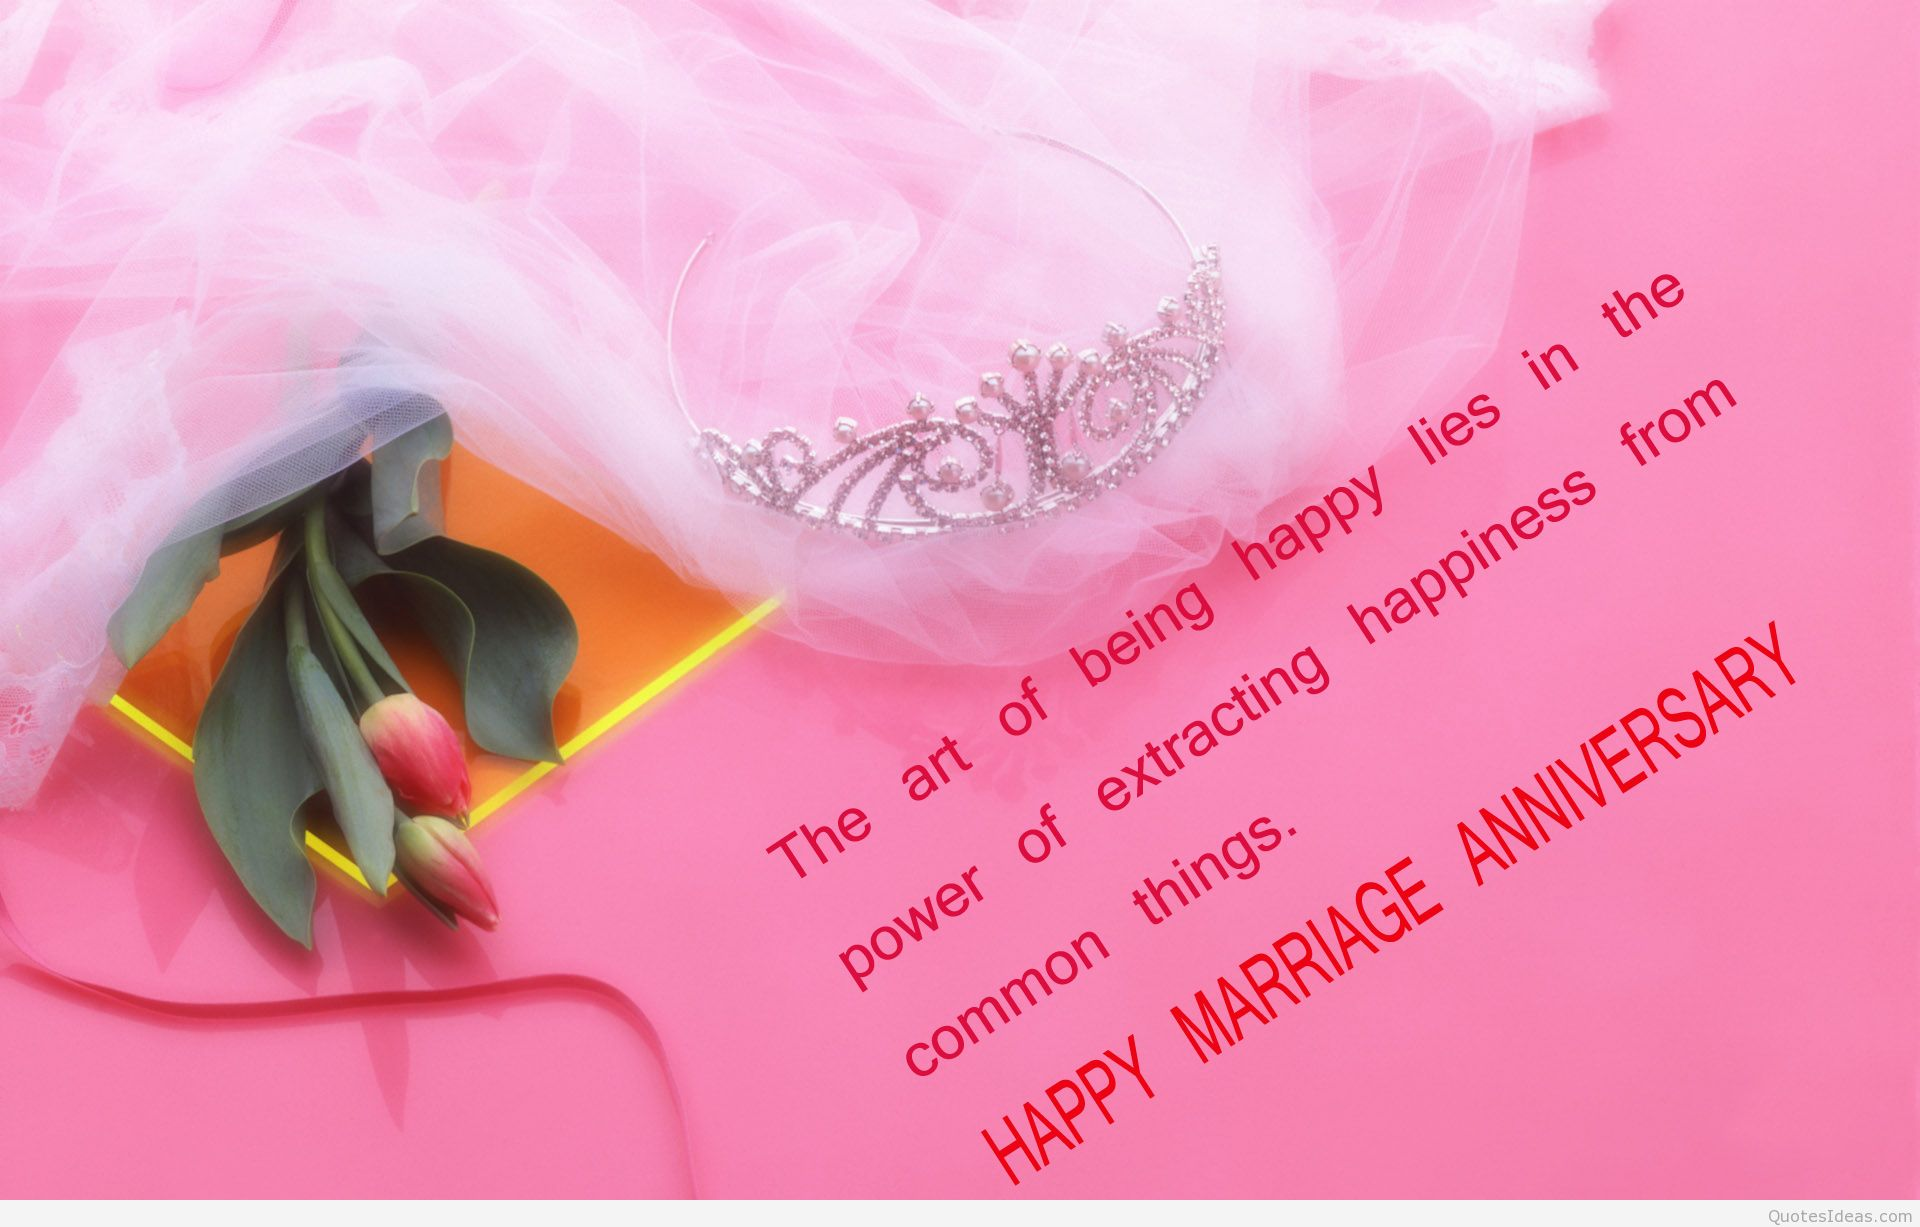 Top 50 beautiful happy wedding anniversary wishes images photos marriage anniversary images stopboris Choice Image